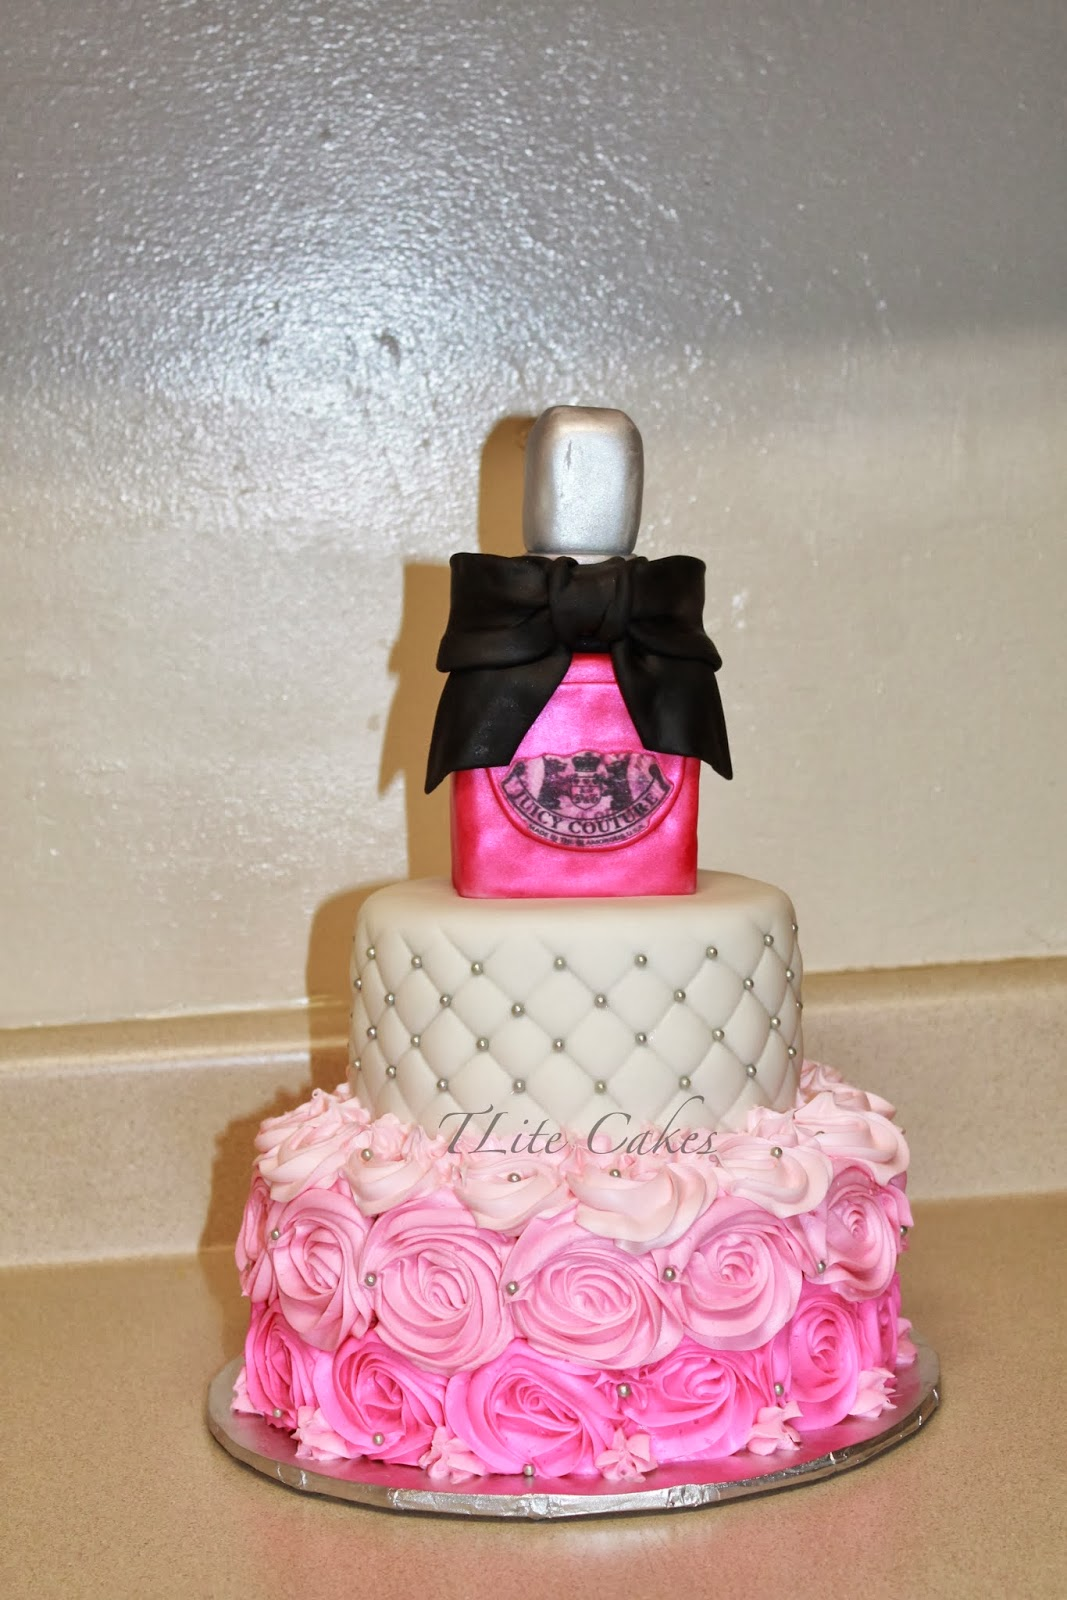 TLite Cakes and Planning: Juicy Couture 21st Birthday Cake and Party ...